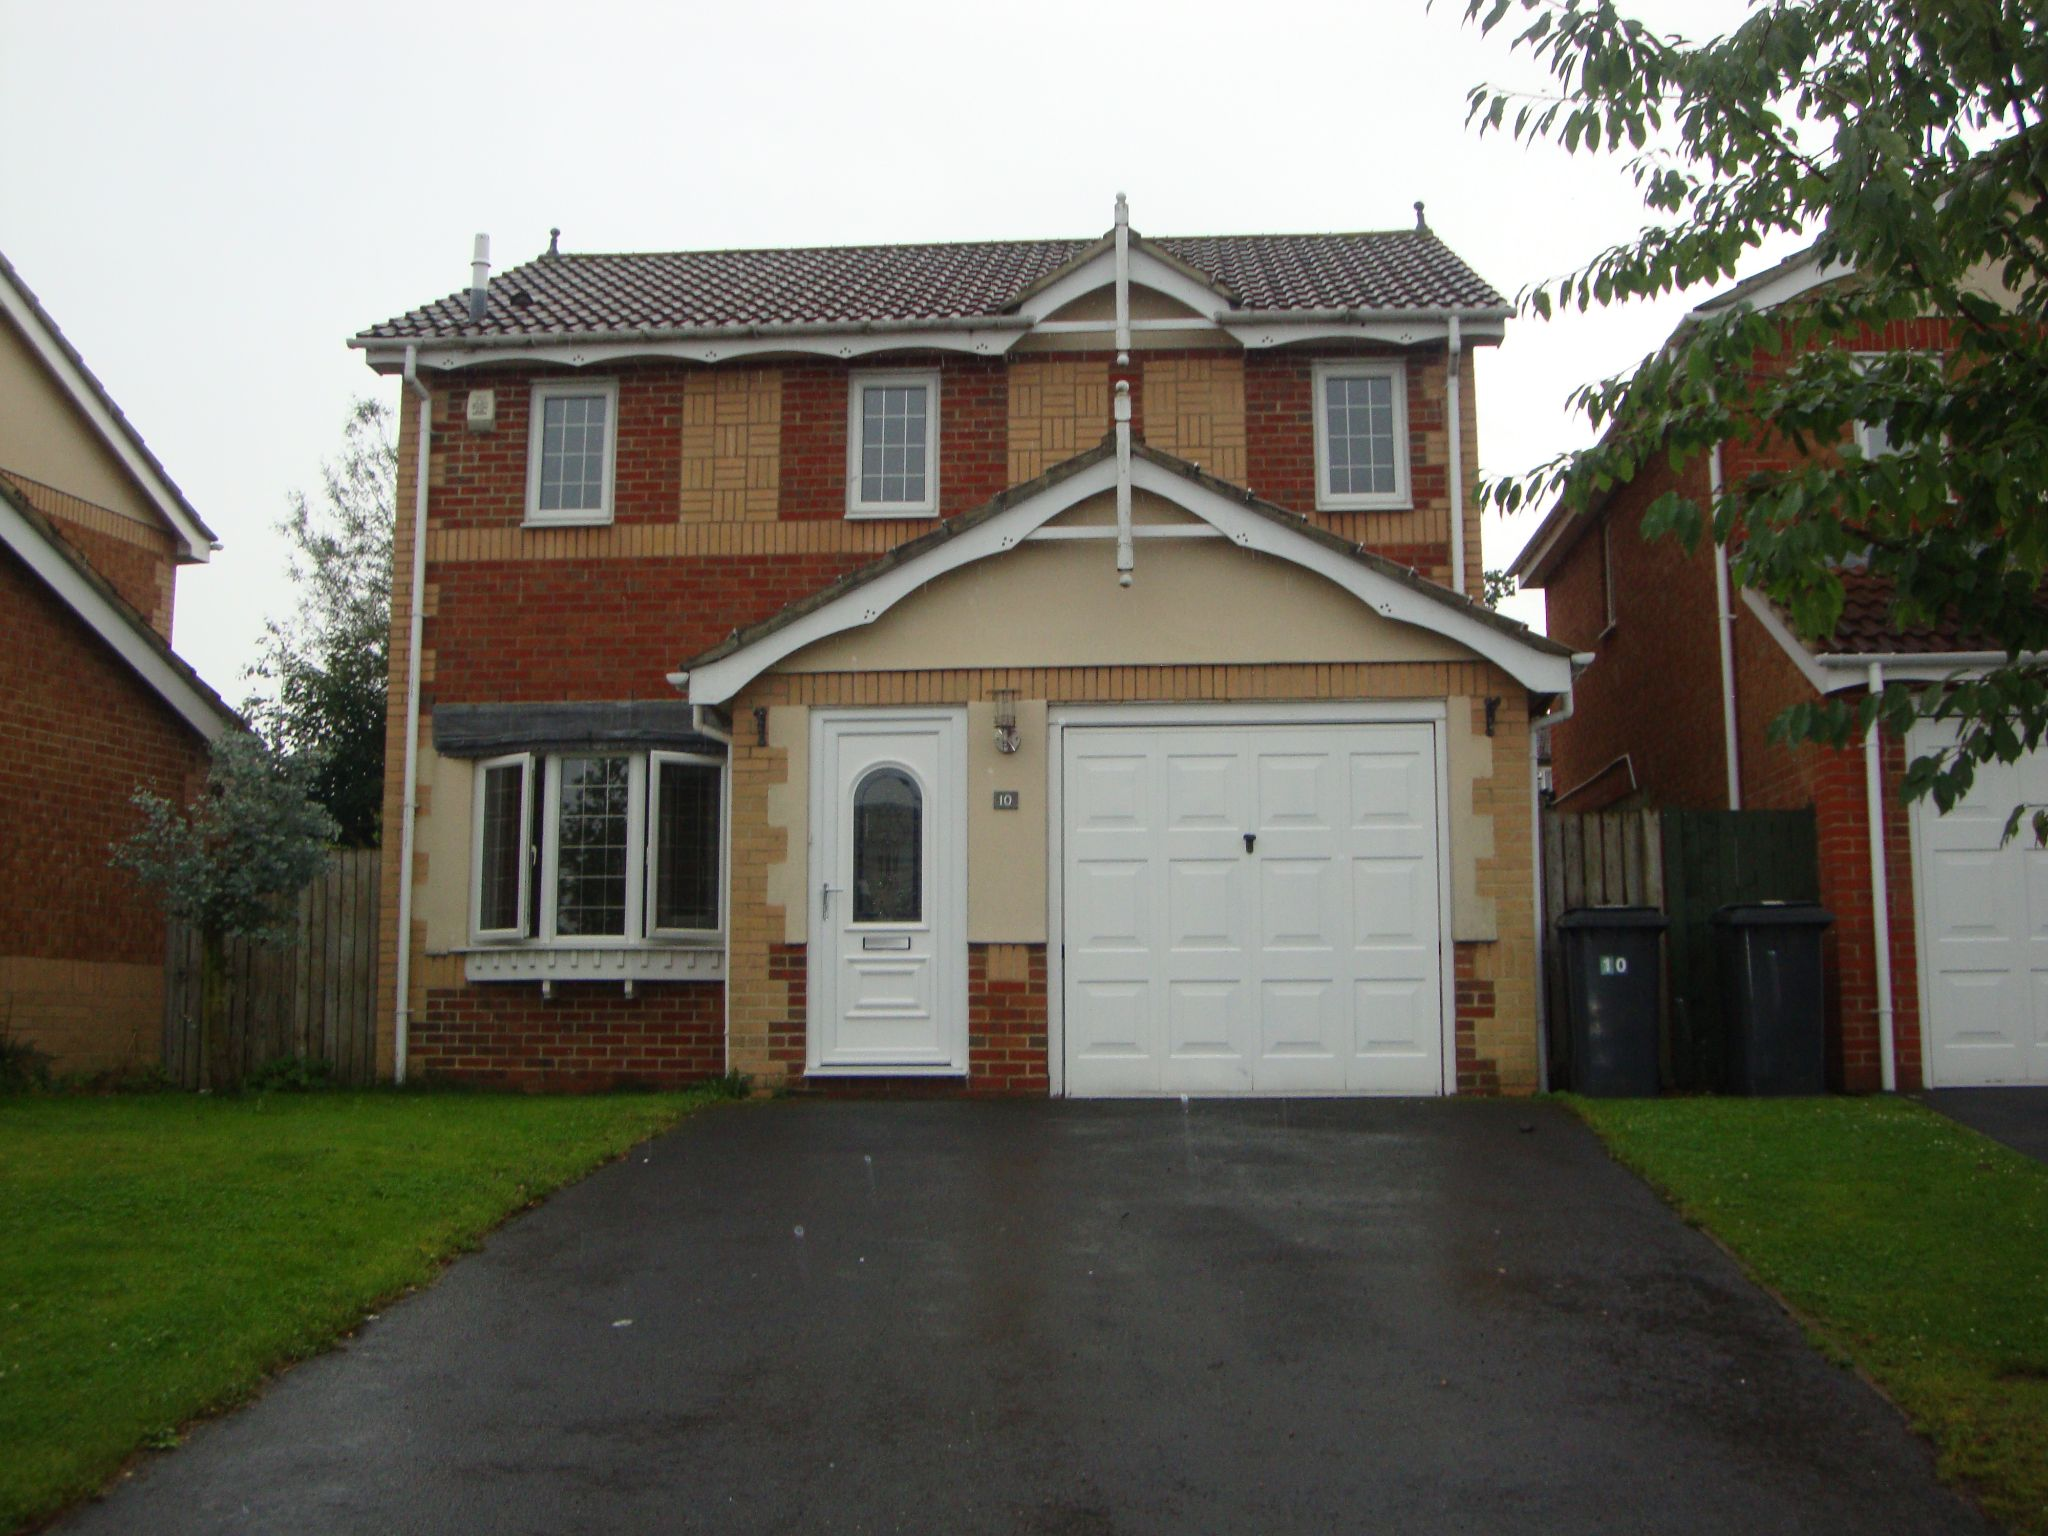 4 bedroom detached house For Sale in Durham - View of front of property.